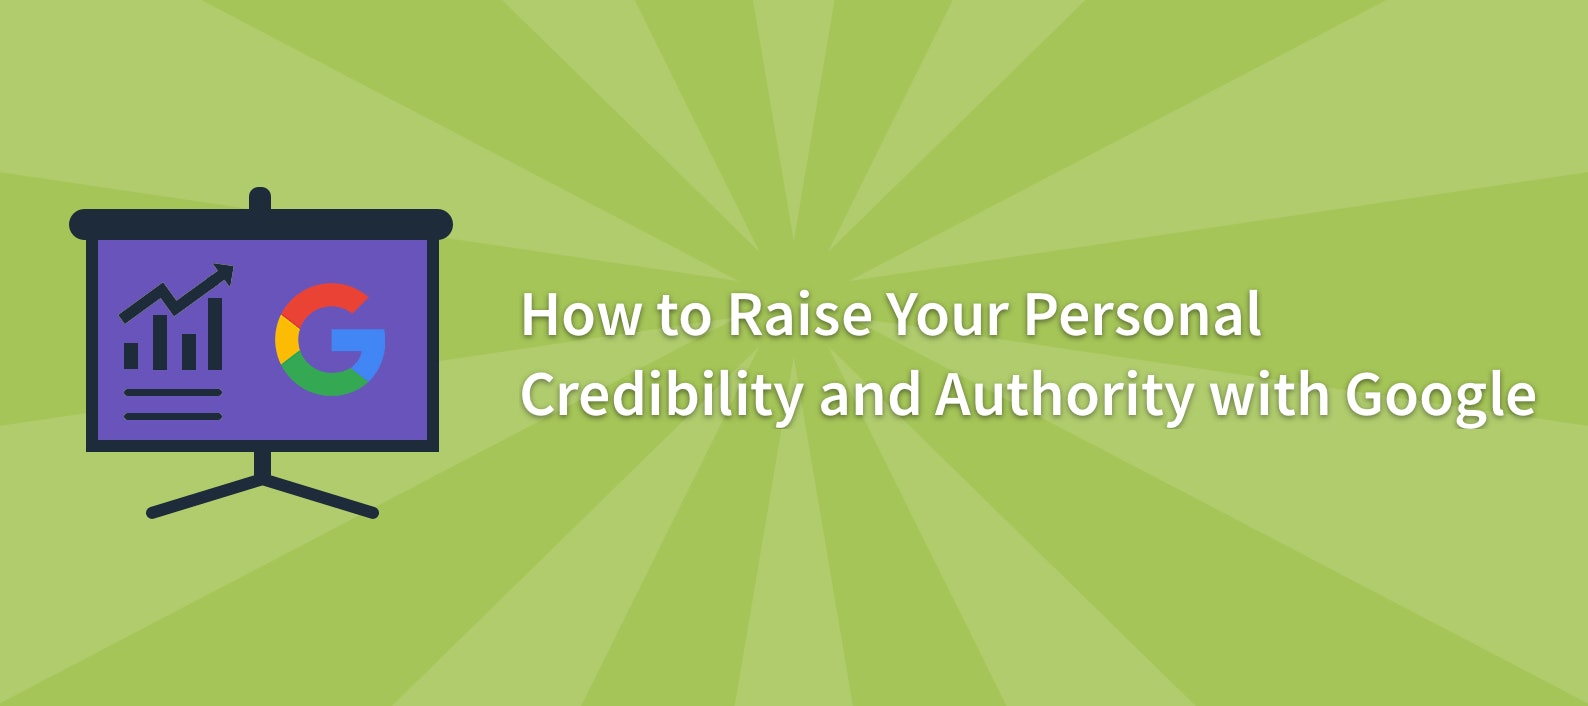 How to Raise Your Personal Authority and Credibility with Google